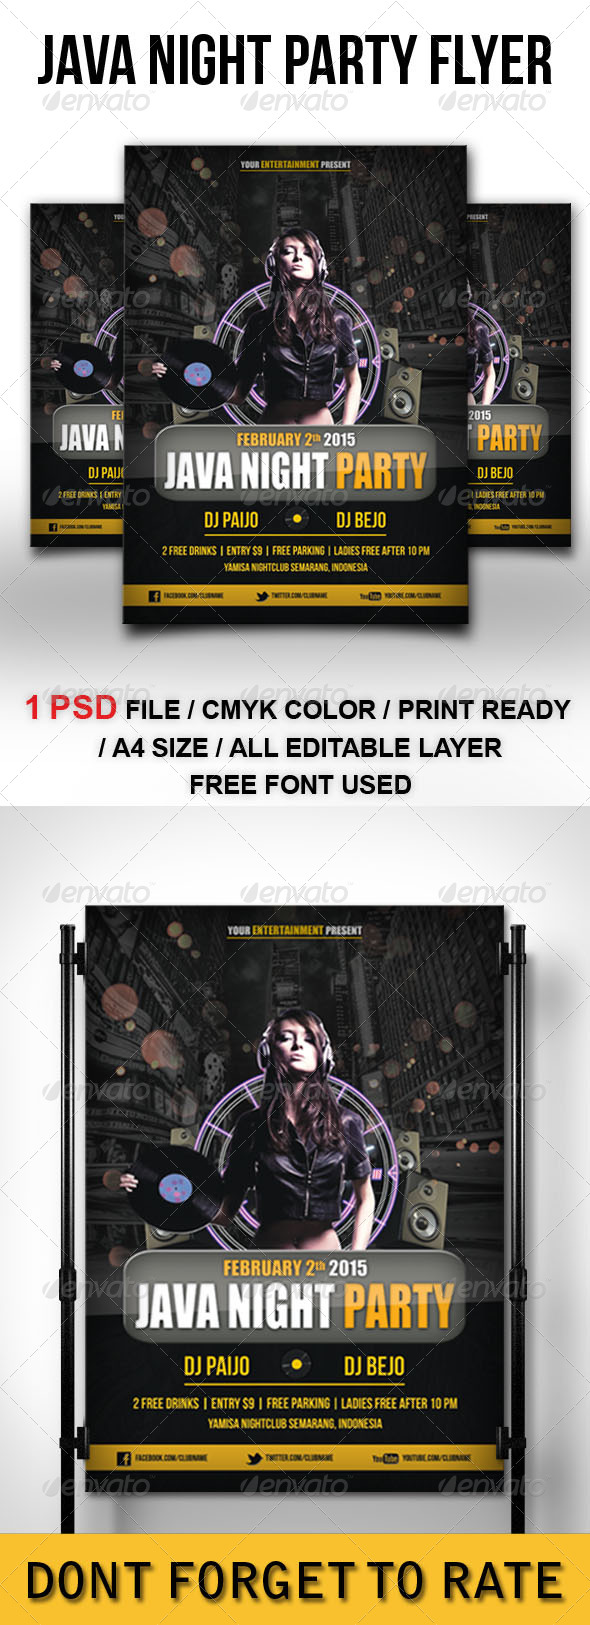 Java Night Party Flyer Template - Clubs & Parties Events